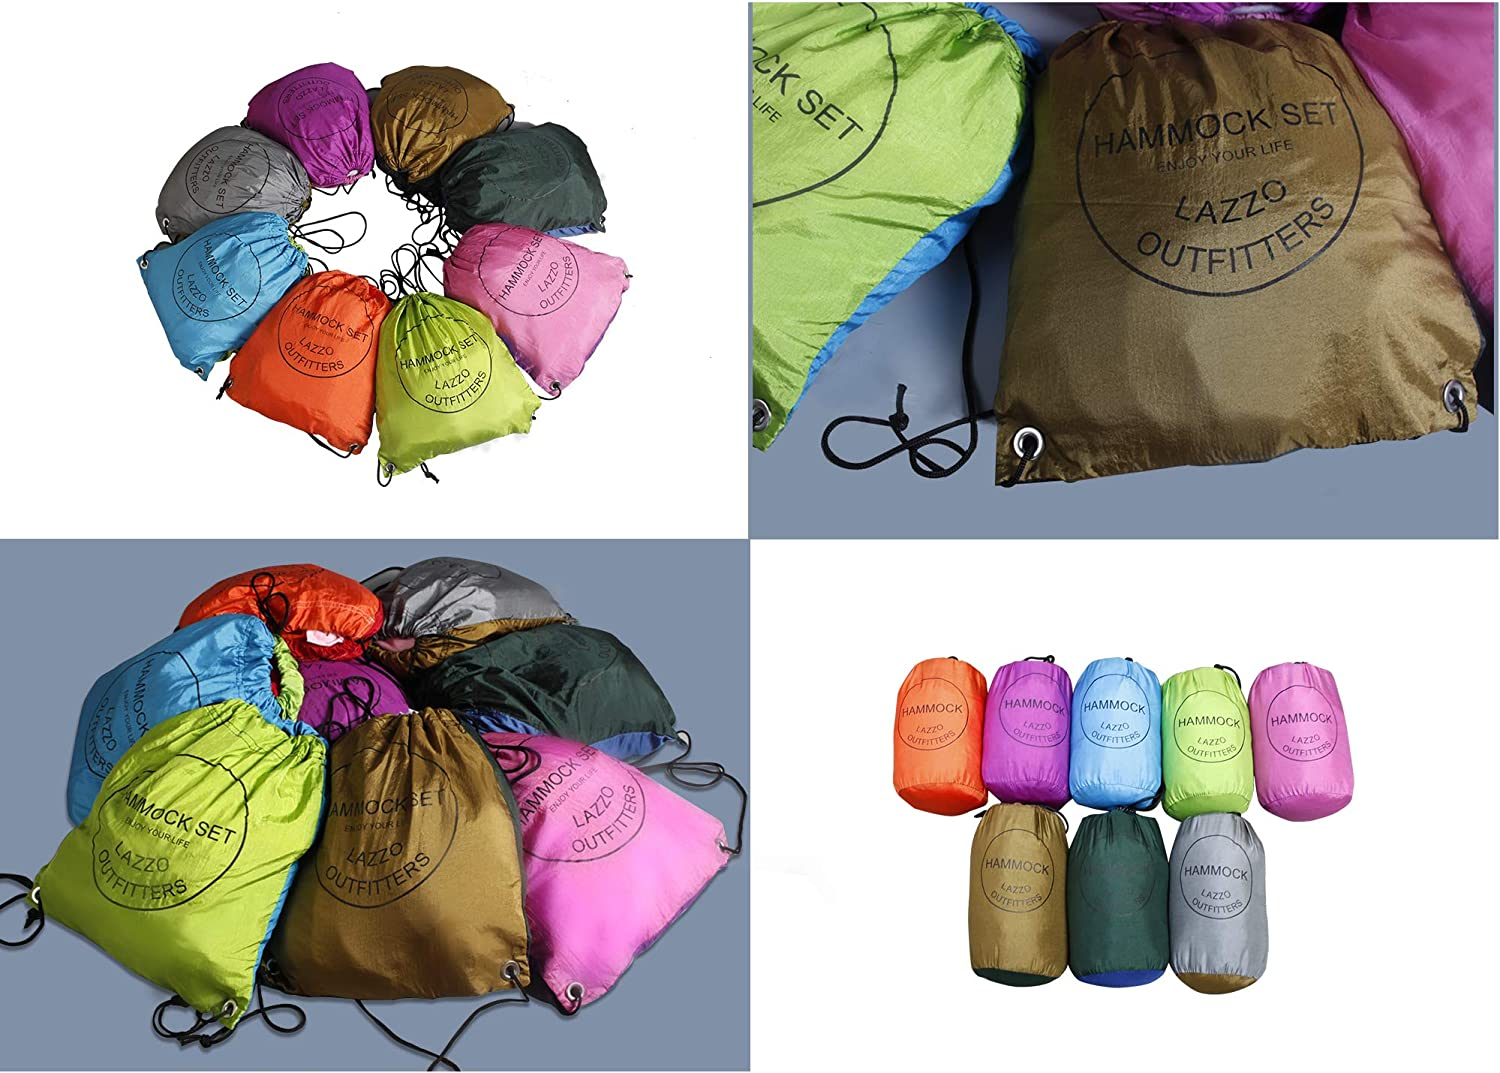 Tree Straps Bundle Includes Net Backpack Lightweight Nylon Single Hammock Tarp Weighs 4 Pounds LAZZO Camping Hammock Perfect for Hammock Camping,Backpacking,Hiking